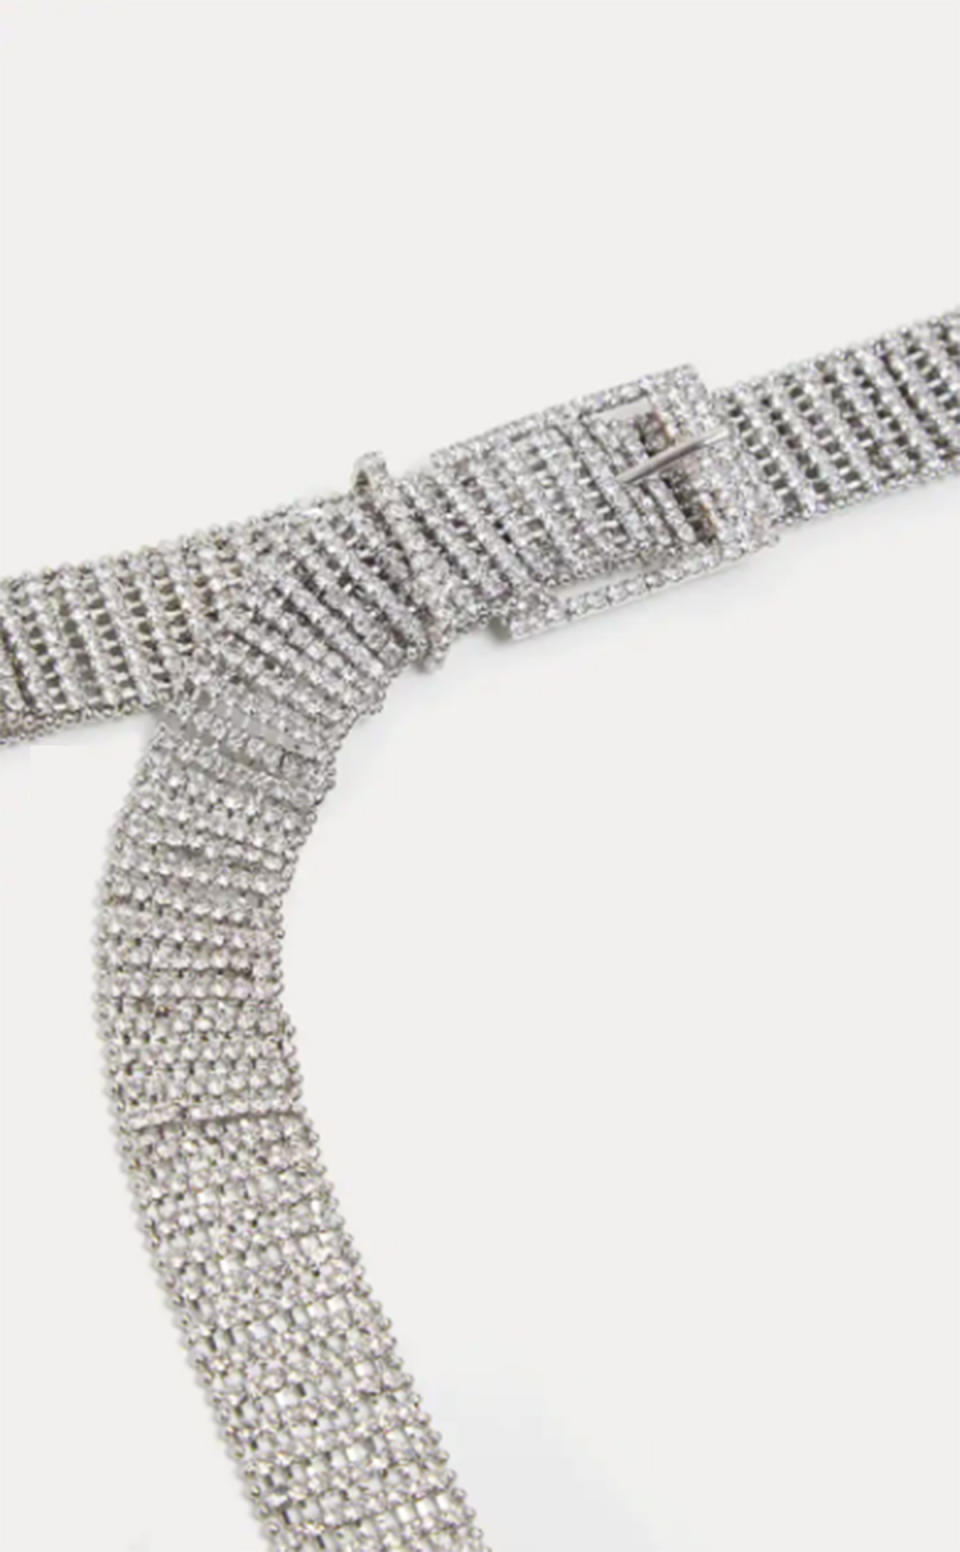 Pretty Little Thing Silver Diamante Chain Link Belt, $37 (on sale)